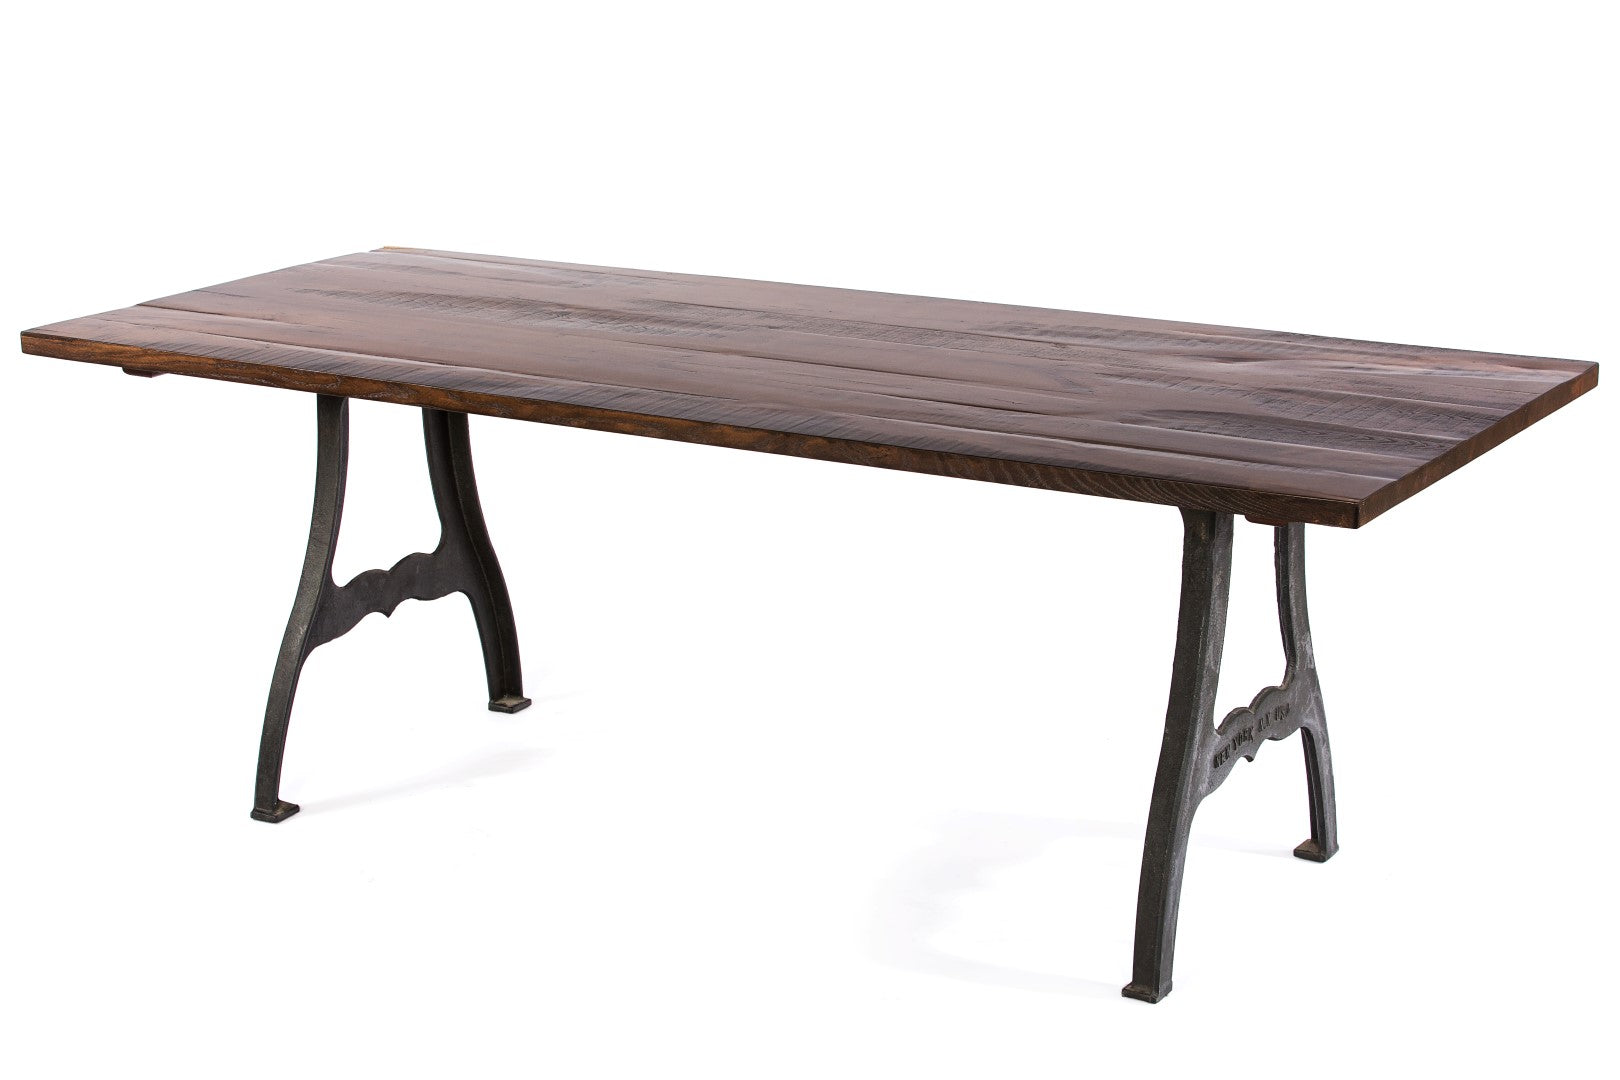 "Wood Tables | Williamsburg Table | Espresso Ash | Pure White | CUSTOM SIZE L 96 W 30 H 30 | 1.75"" kingston-krafts-zinc-tables."